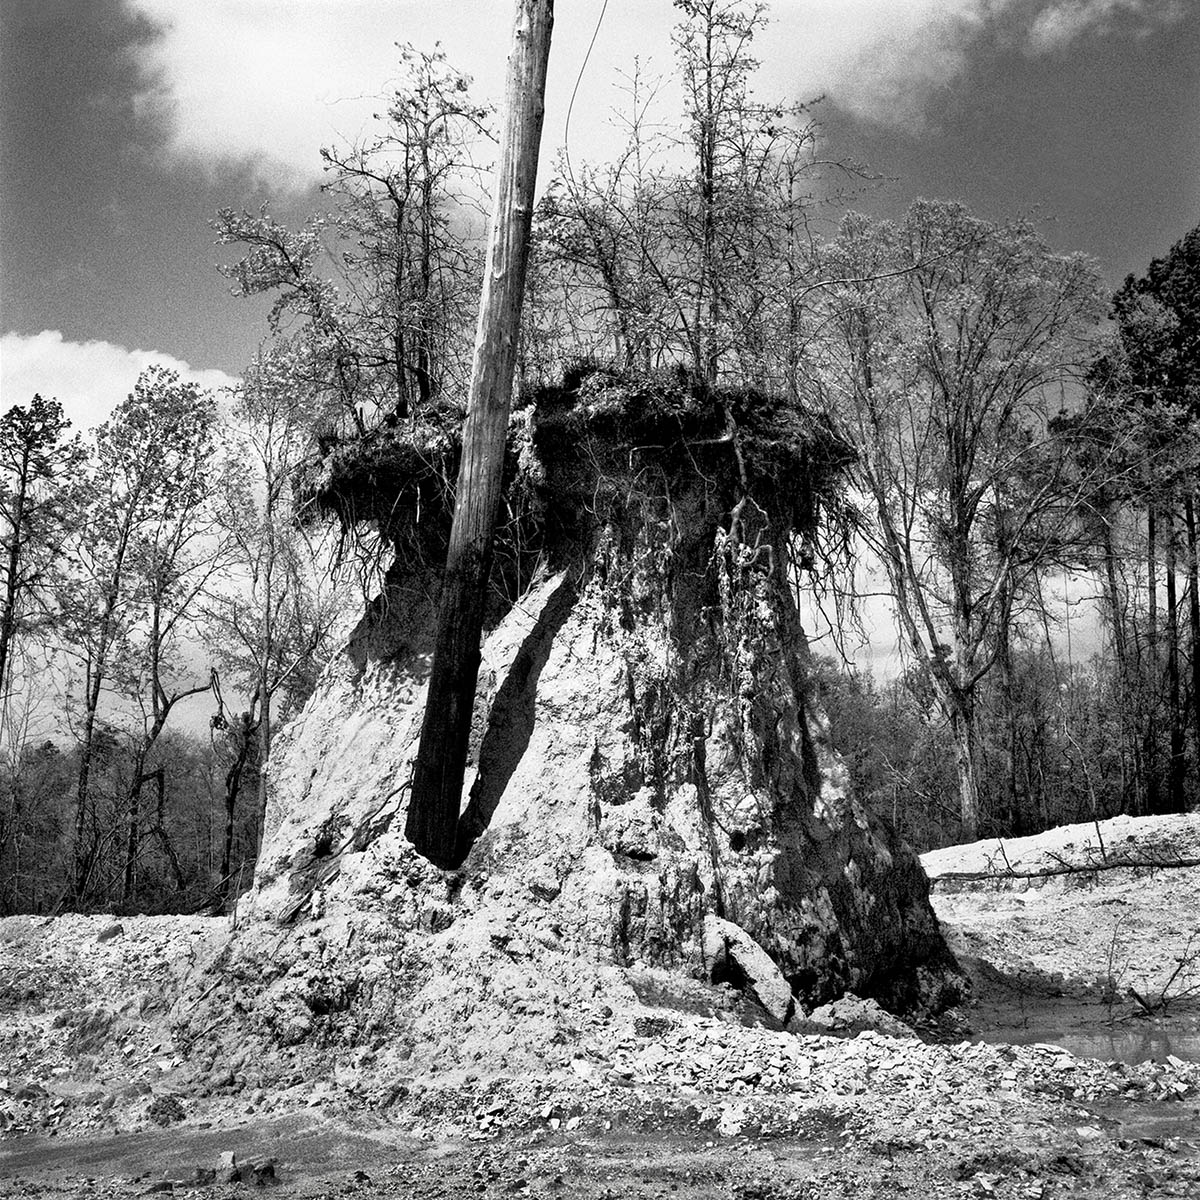 Land Excavation, Mississippi, 1997